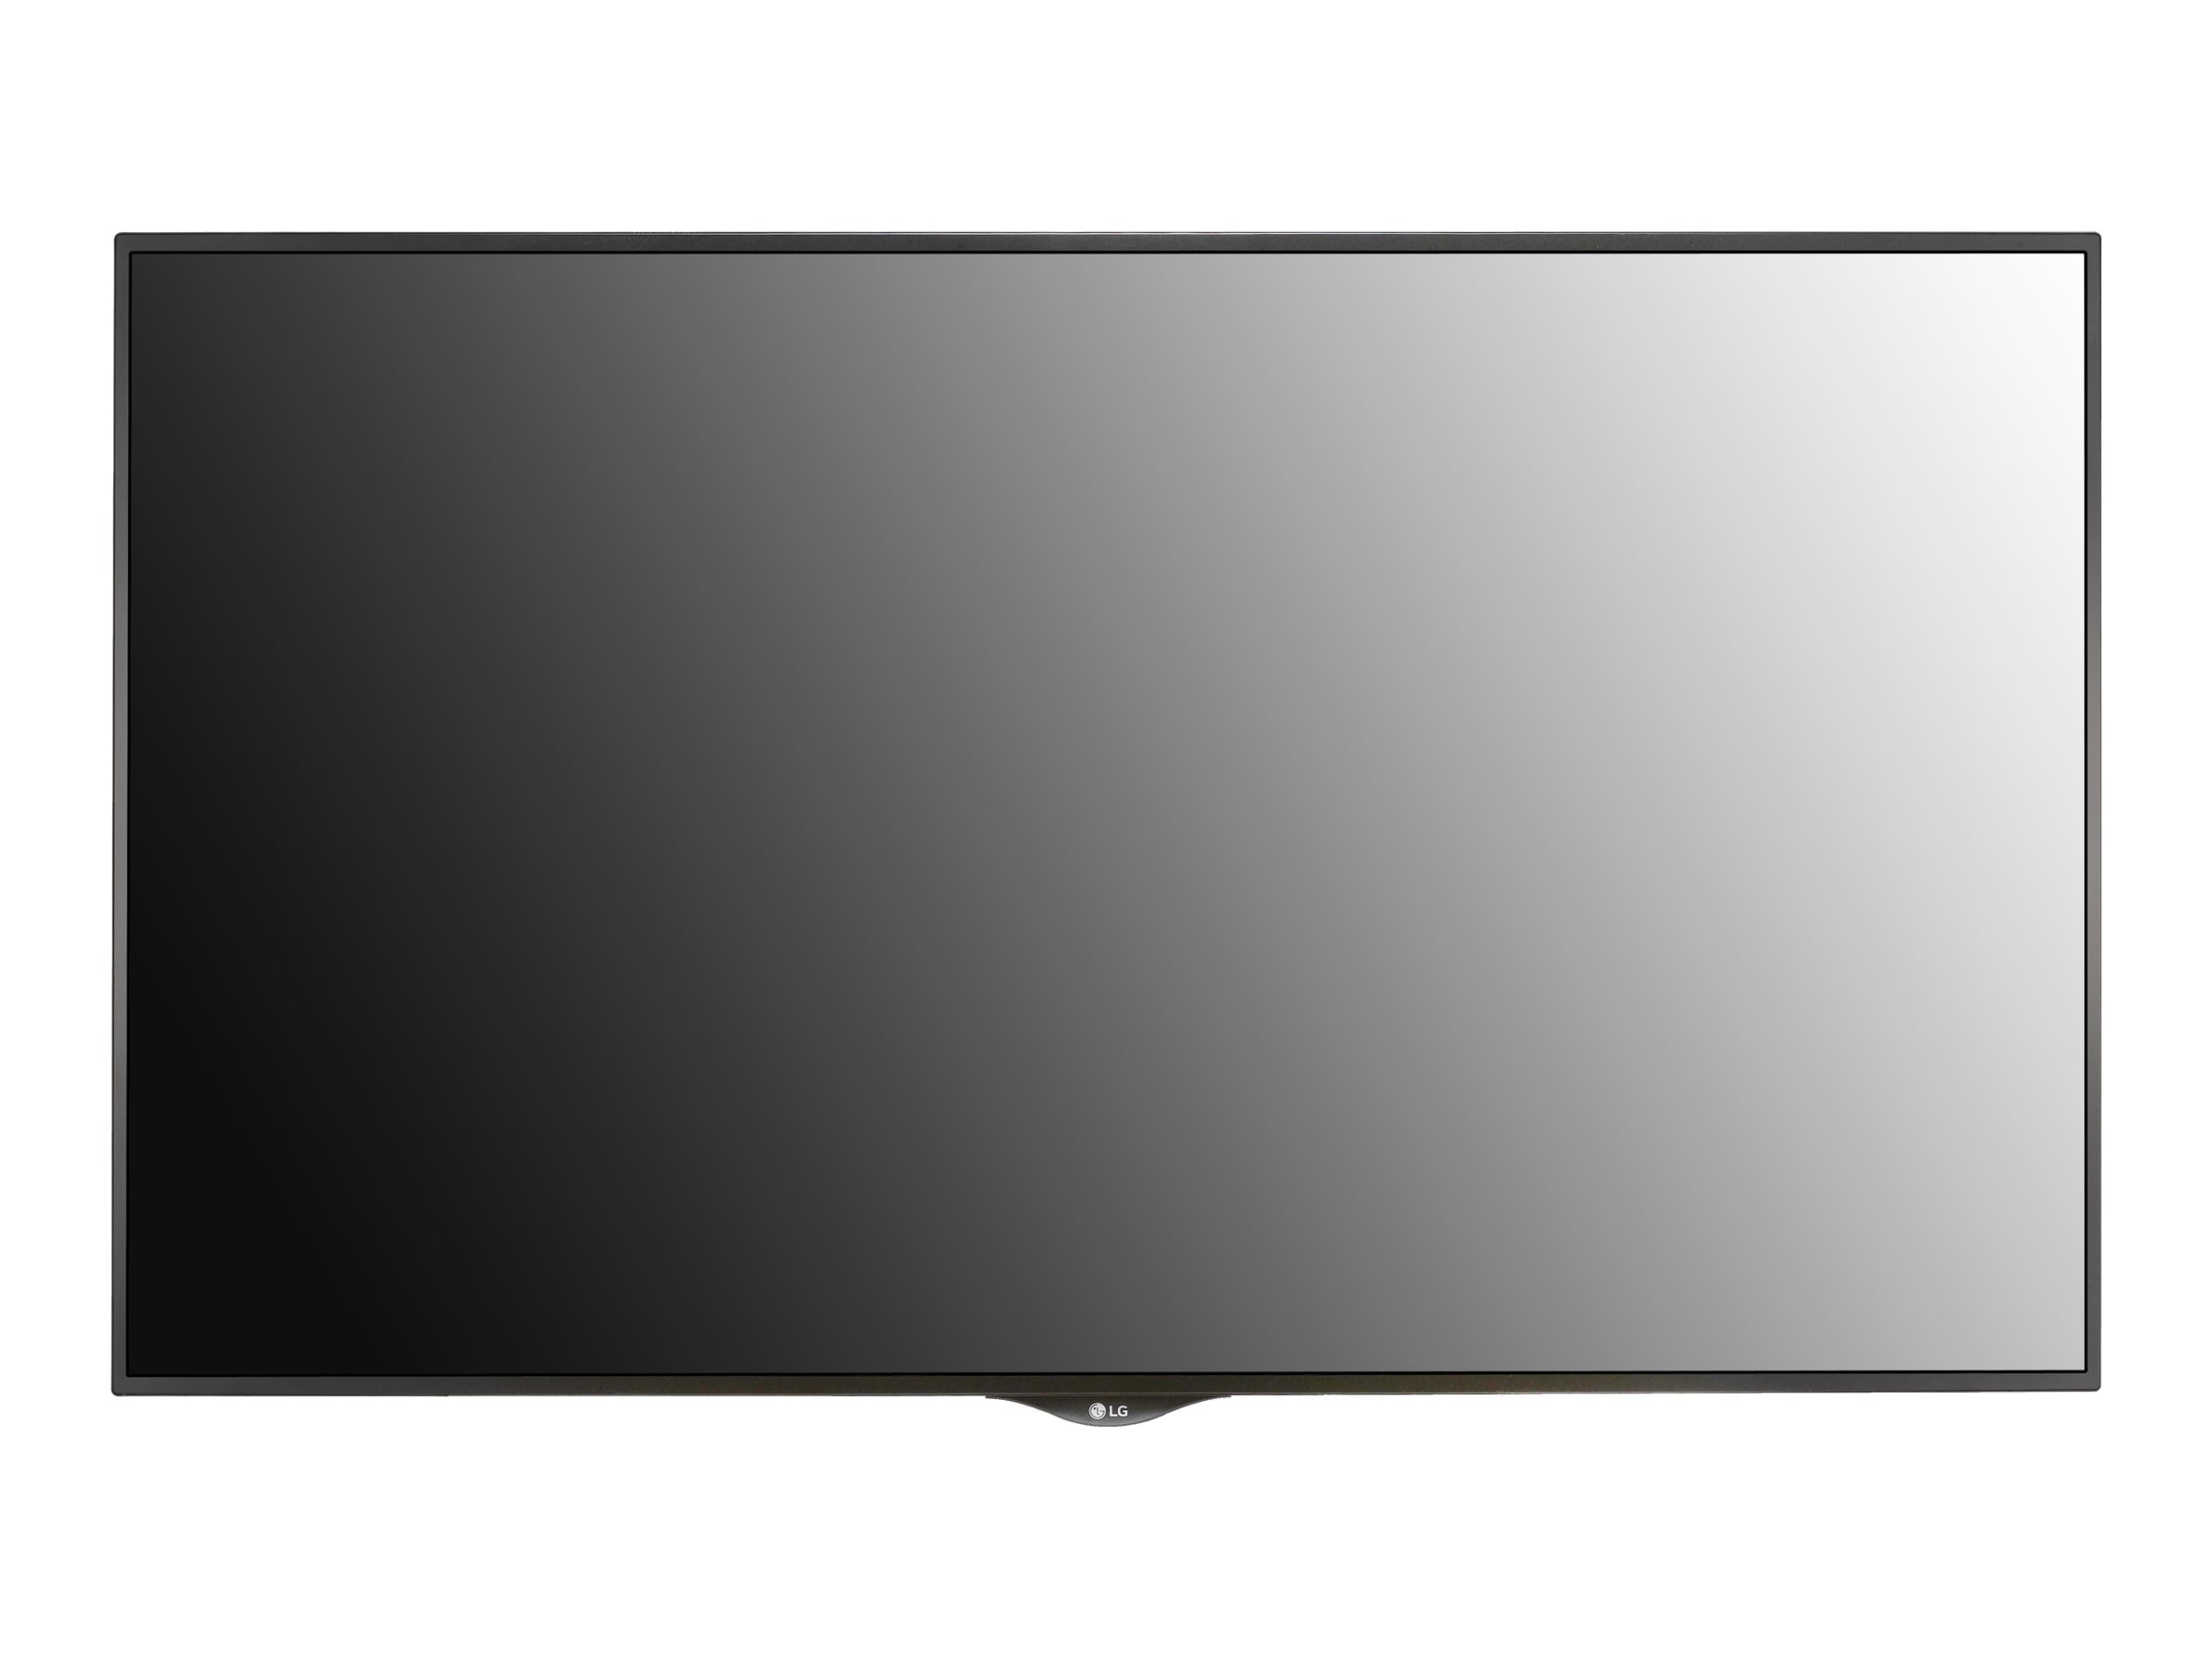 LG 55 XS2B-B Full HD LED-LCD Hospitality TV, Black, 55XS2B-B